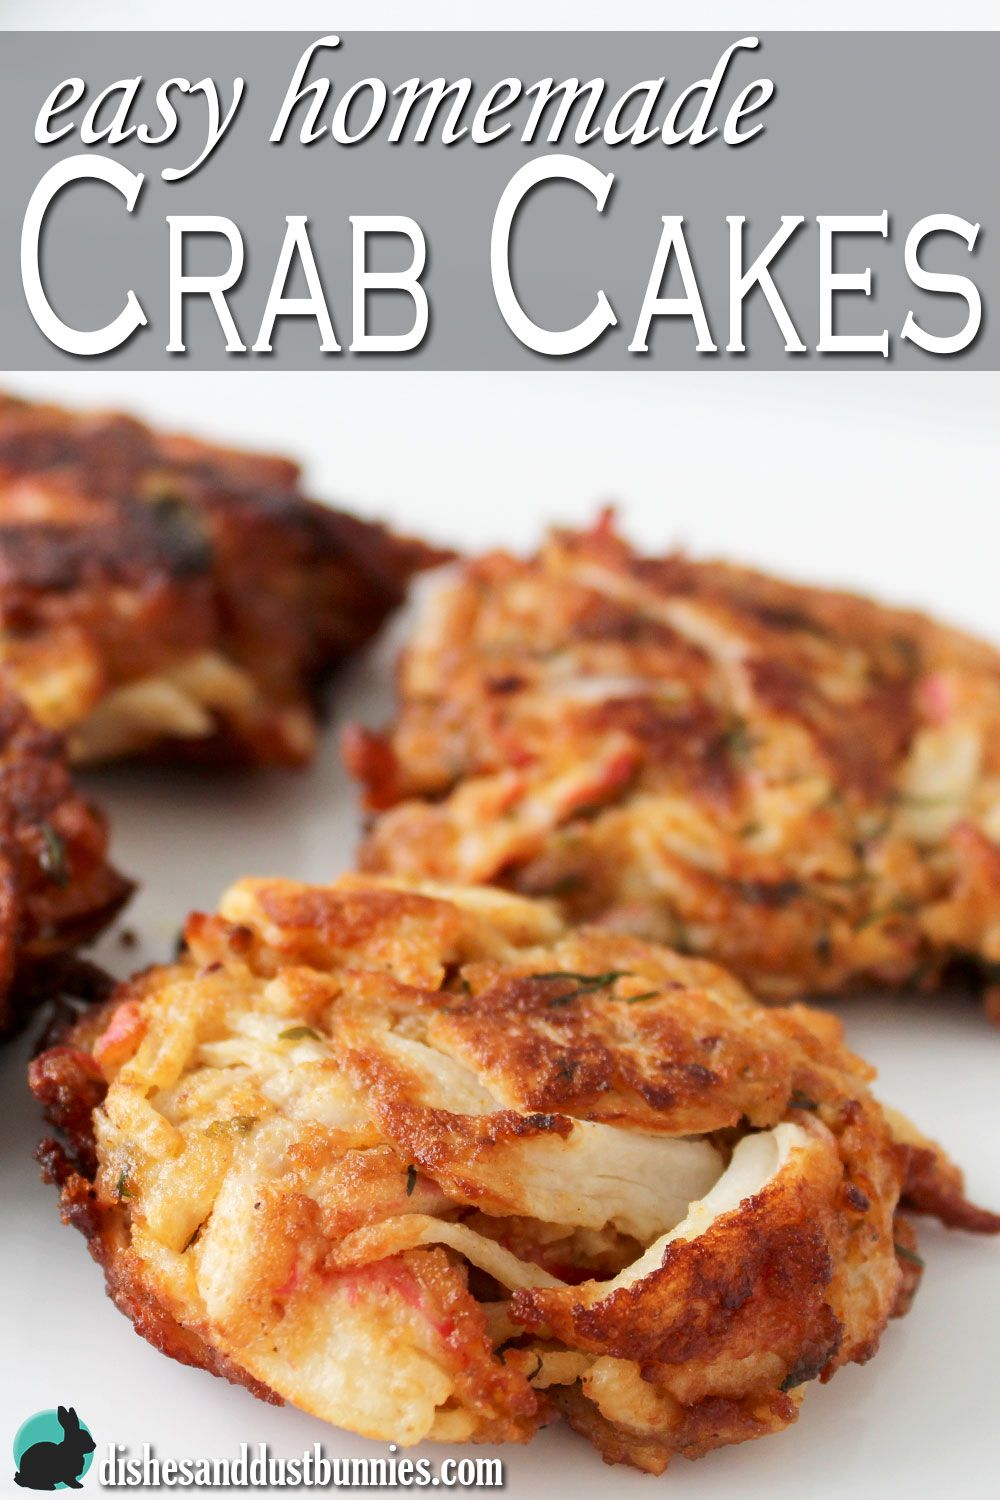 Photo of Simple homemade crab cakes